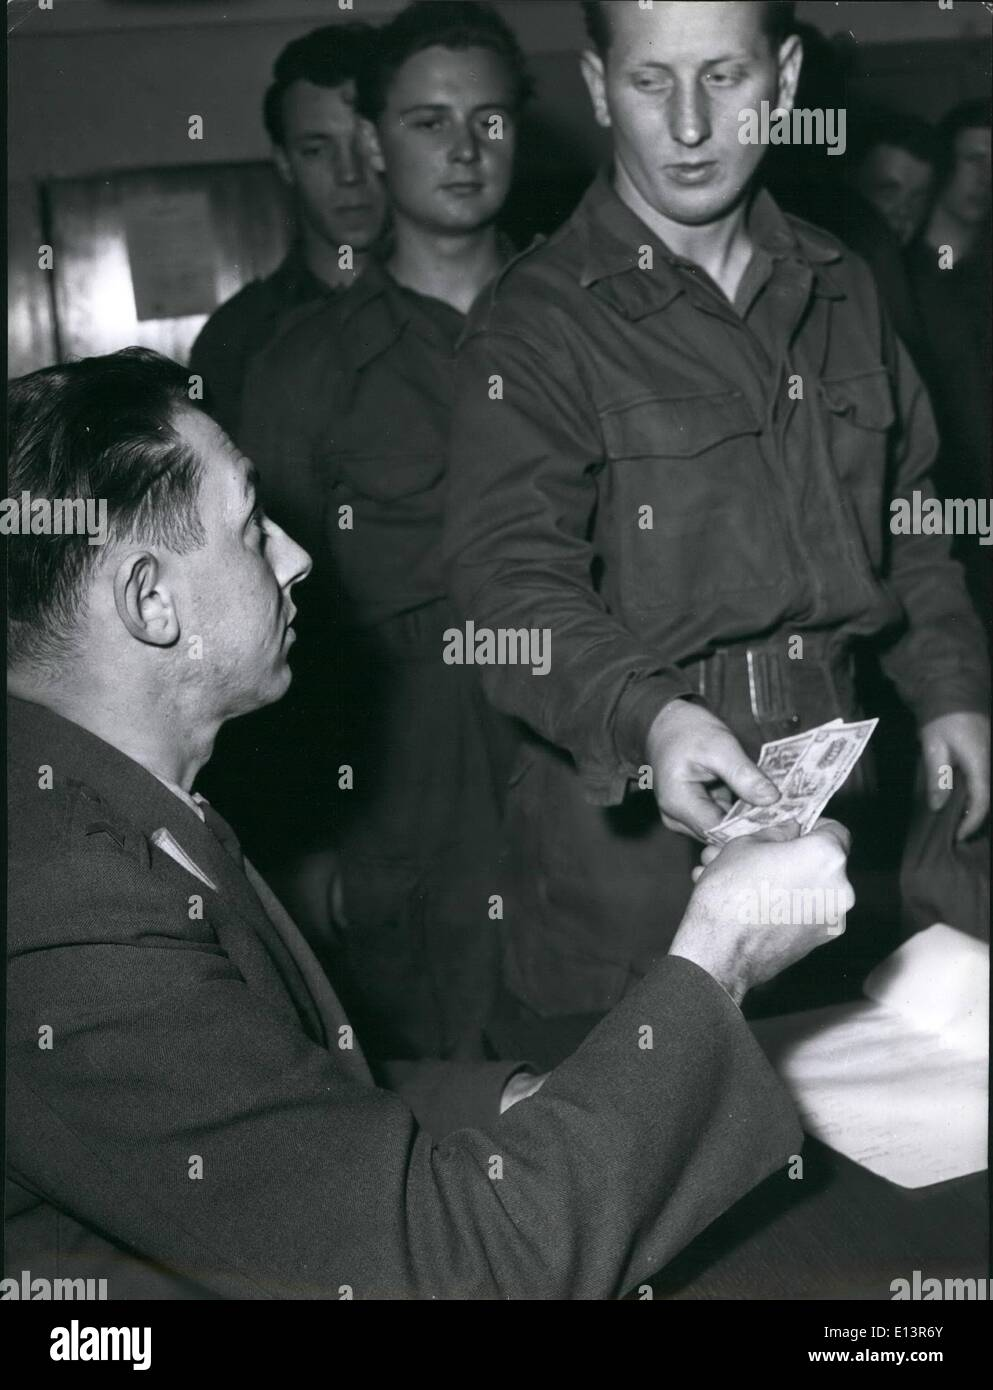 Mar. 22, 2012 - Germany's first post war draftees: A very important day pay-day. Each draftee receives twice a month German Marks 30.00 (approx. 7.50). Hard-earned money. - Stock Image